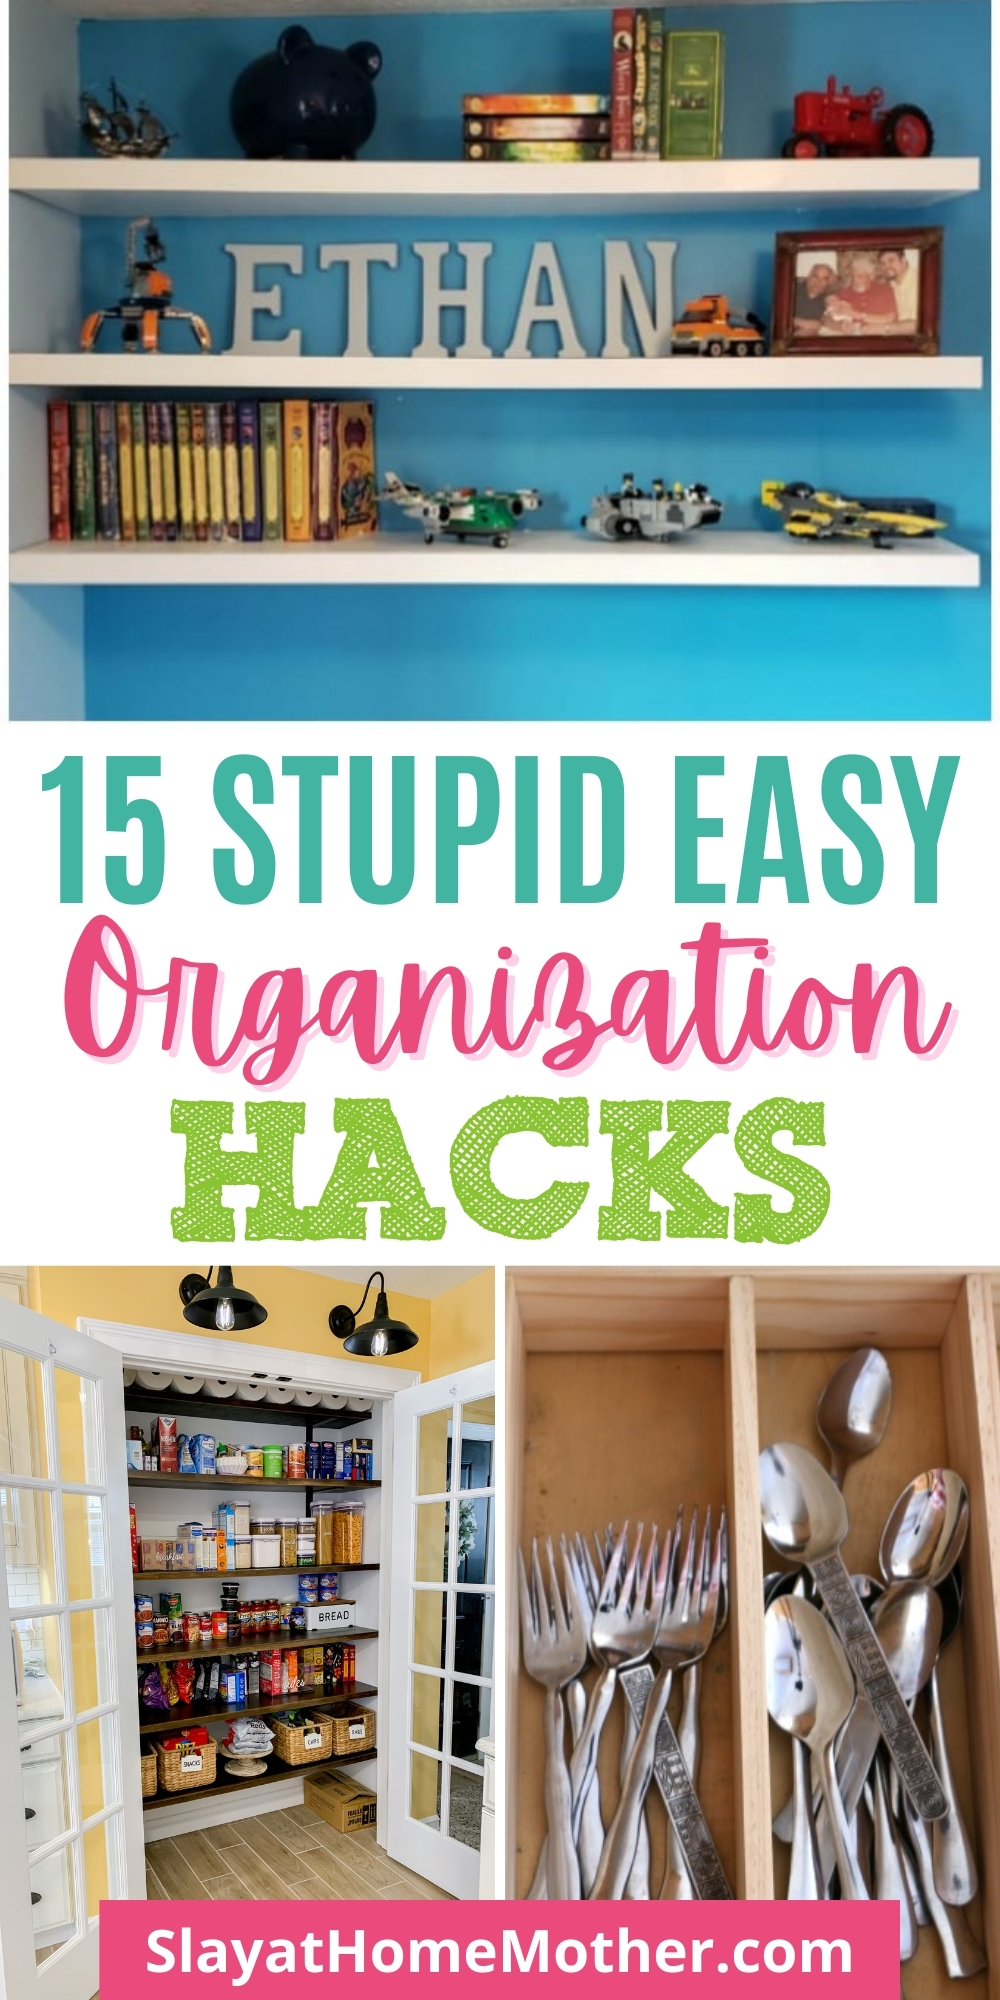 Organize your home with these 15 easy cleaning and organization hacks #slayathomemother #cleaning #organization #claningtips #cleaninghacks